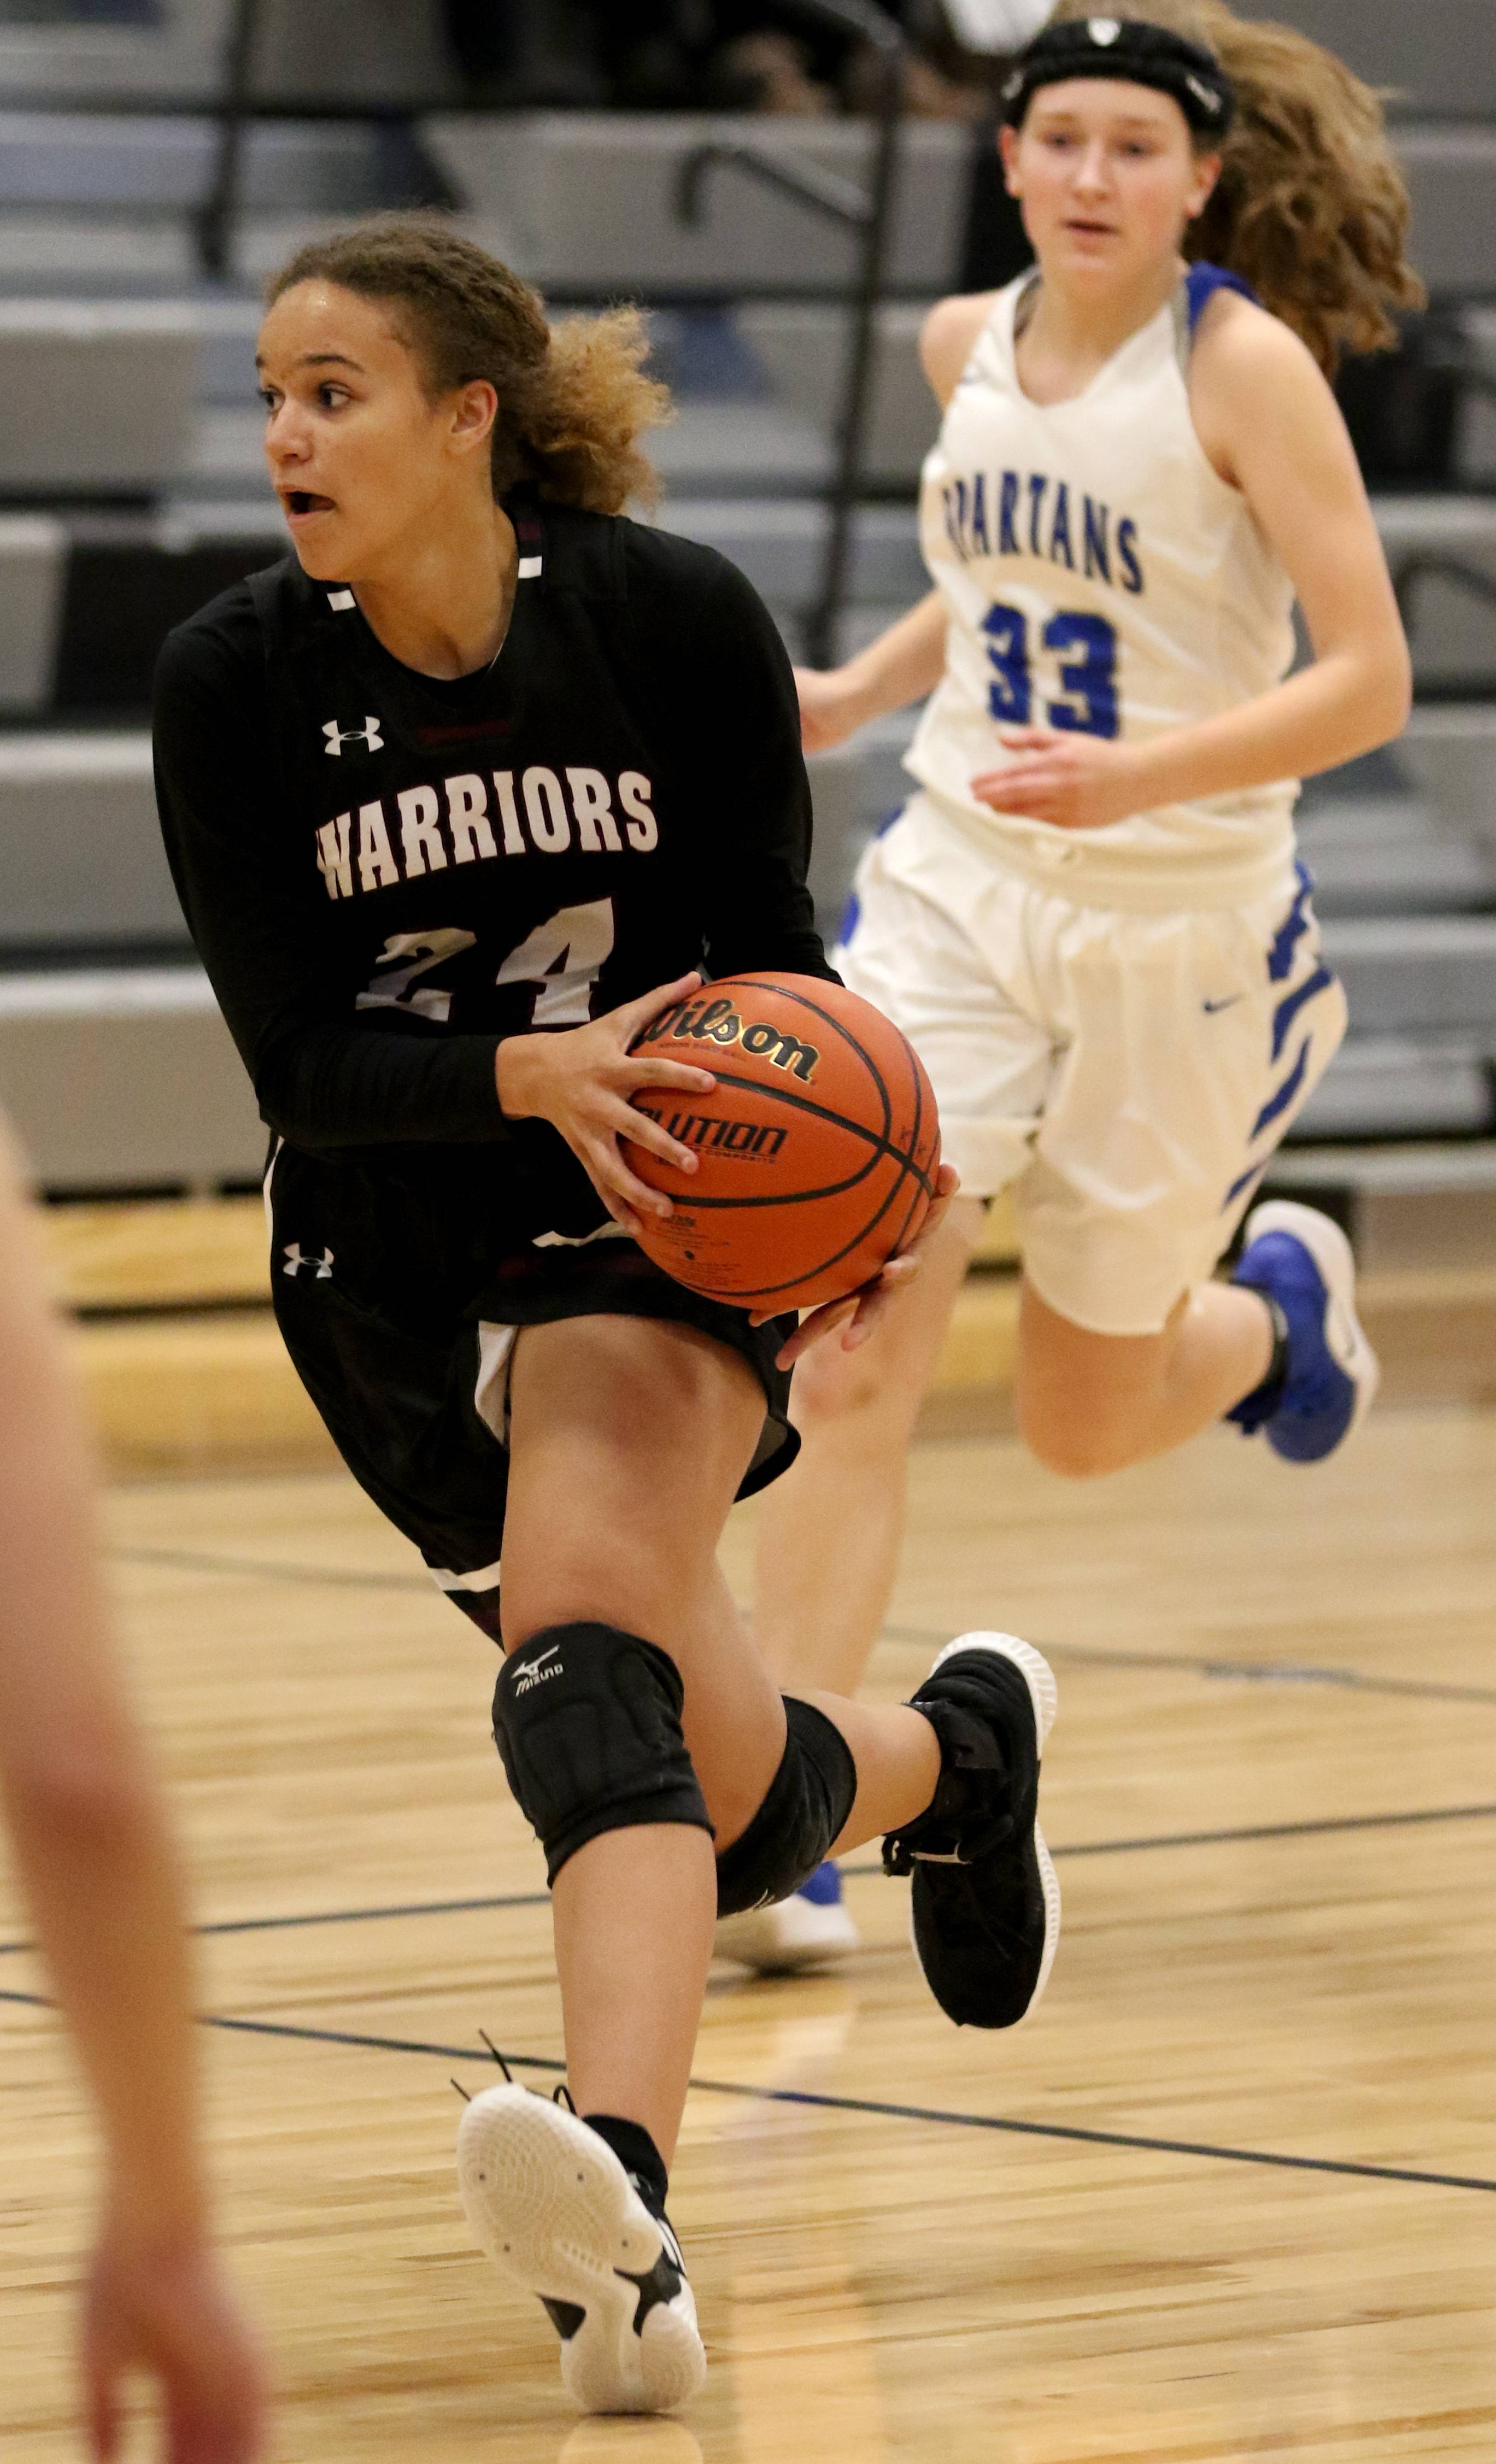 Wheaton Academy's Imani Hillmer moves with the ball against St. Francis during regional girls varsity basketball at Kaneland High School Monday night.